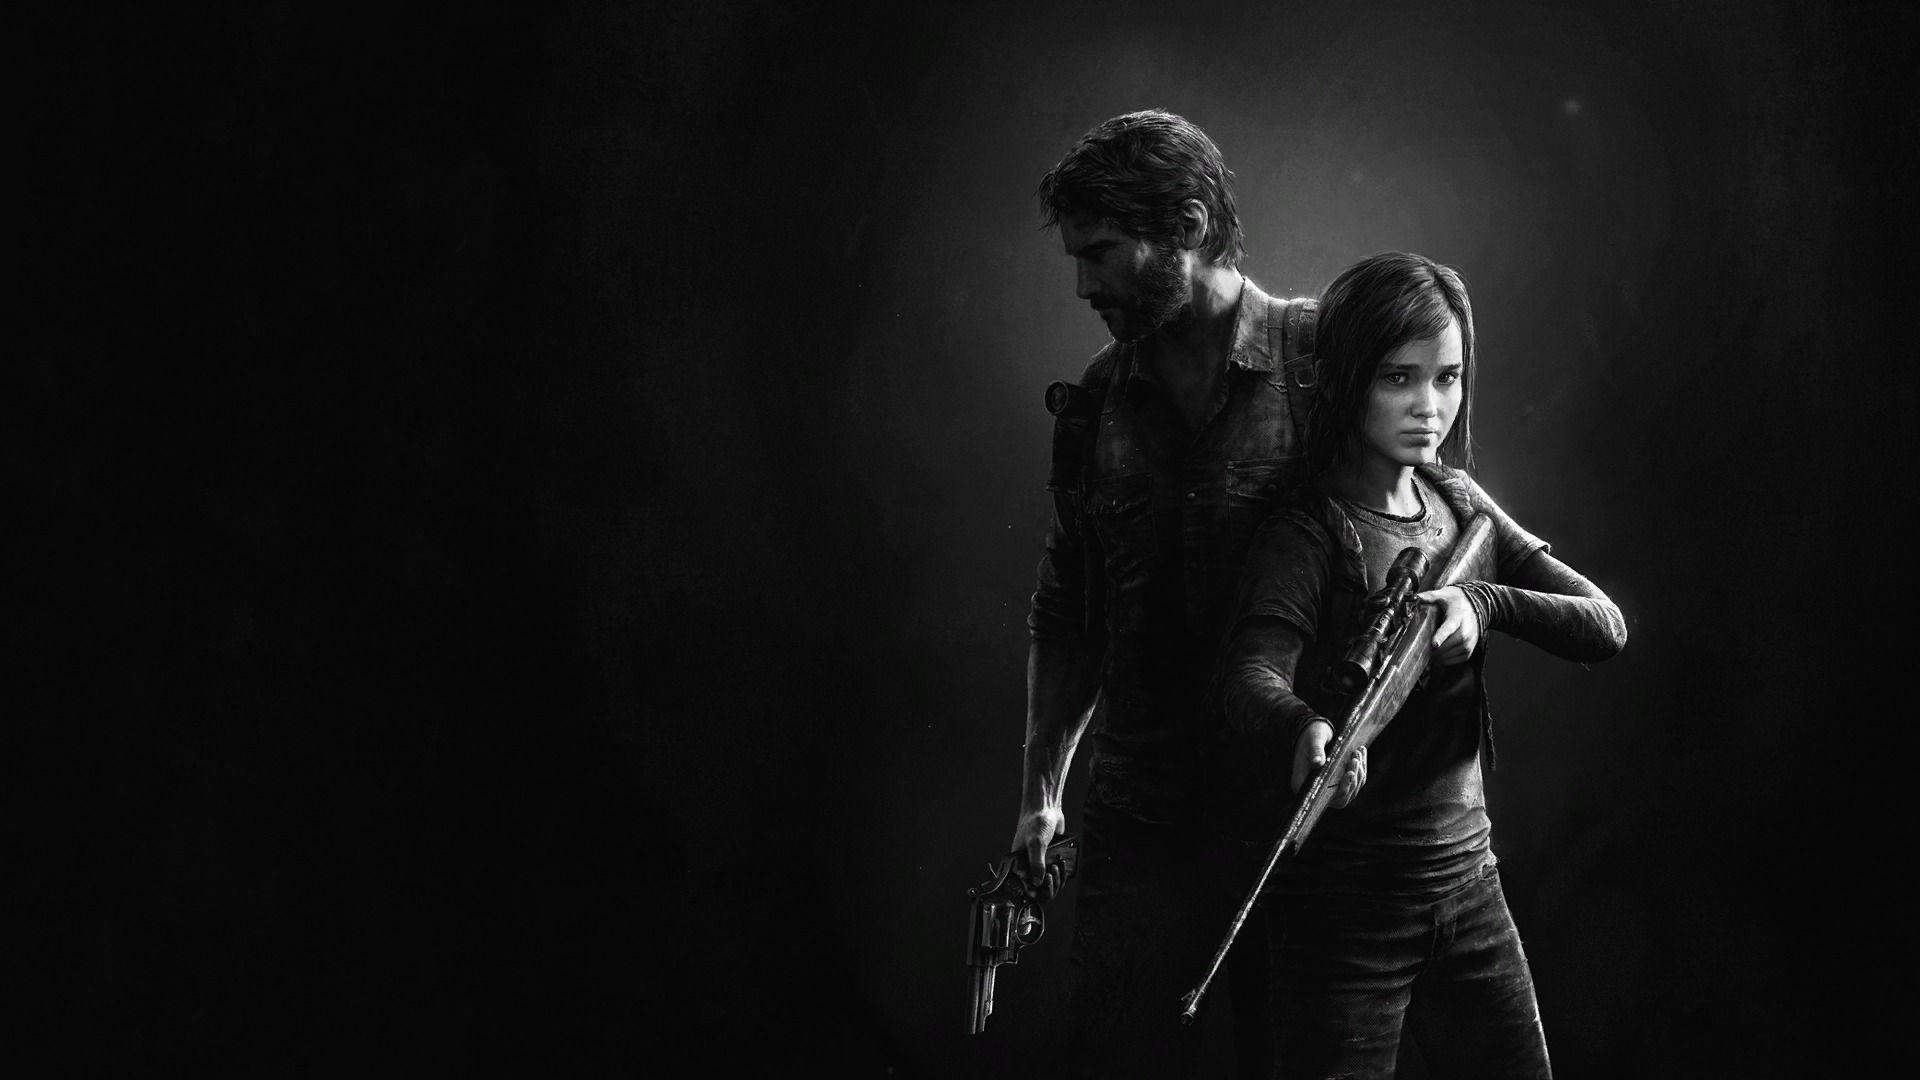 A good The Last of Us wallpapers [1920x1080] : wallpapers